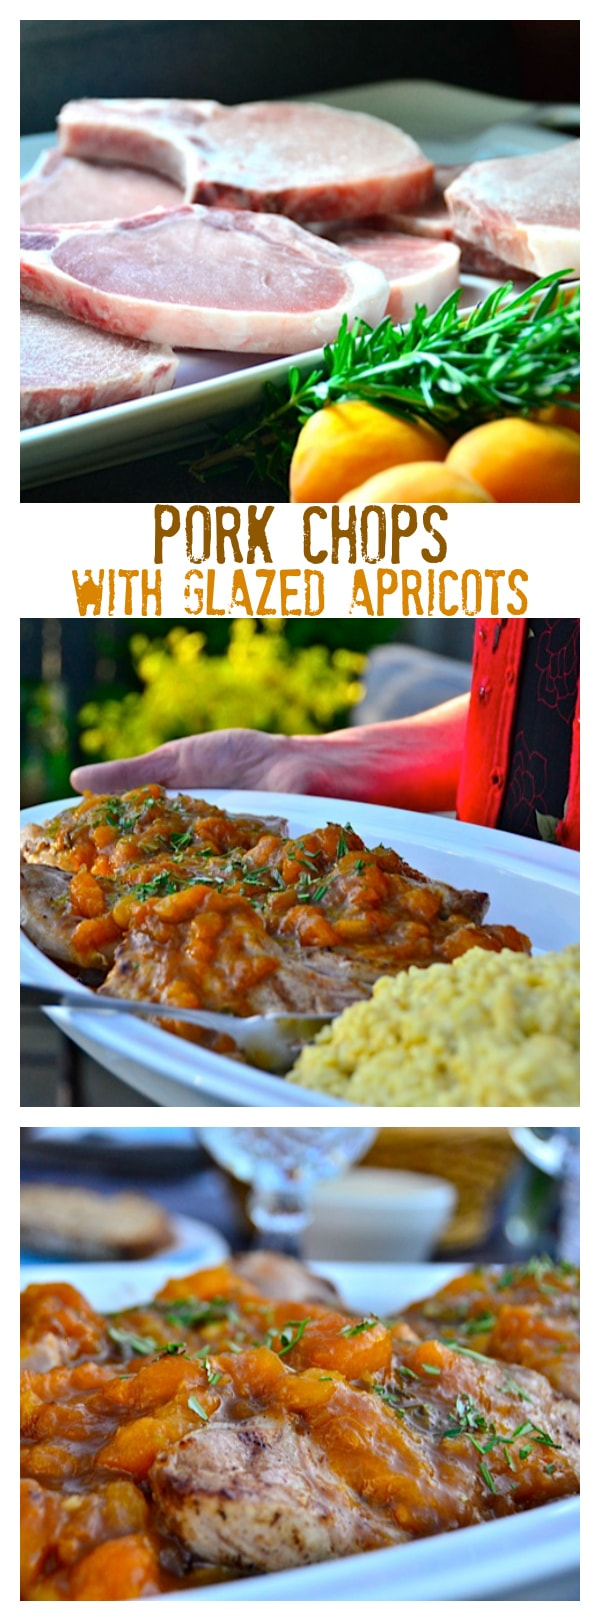 Pork Chops with Glazed Apricots